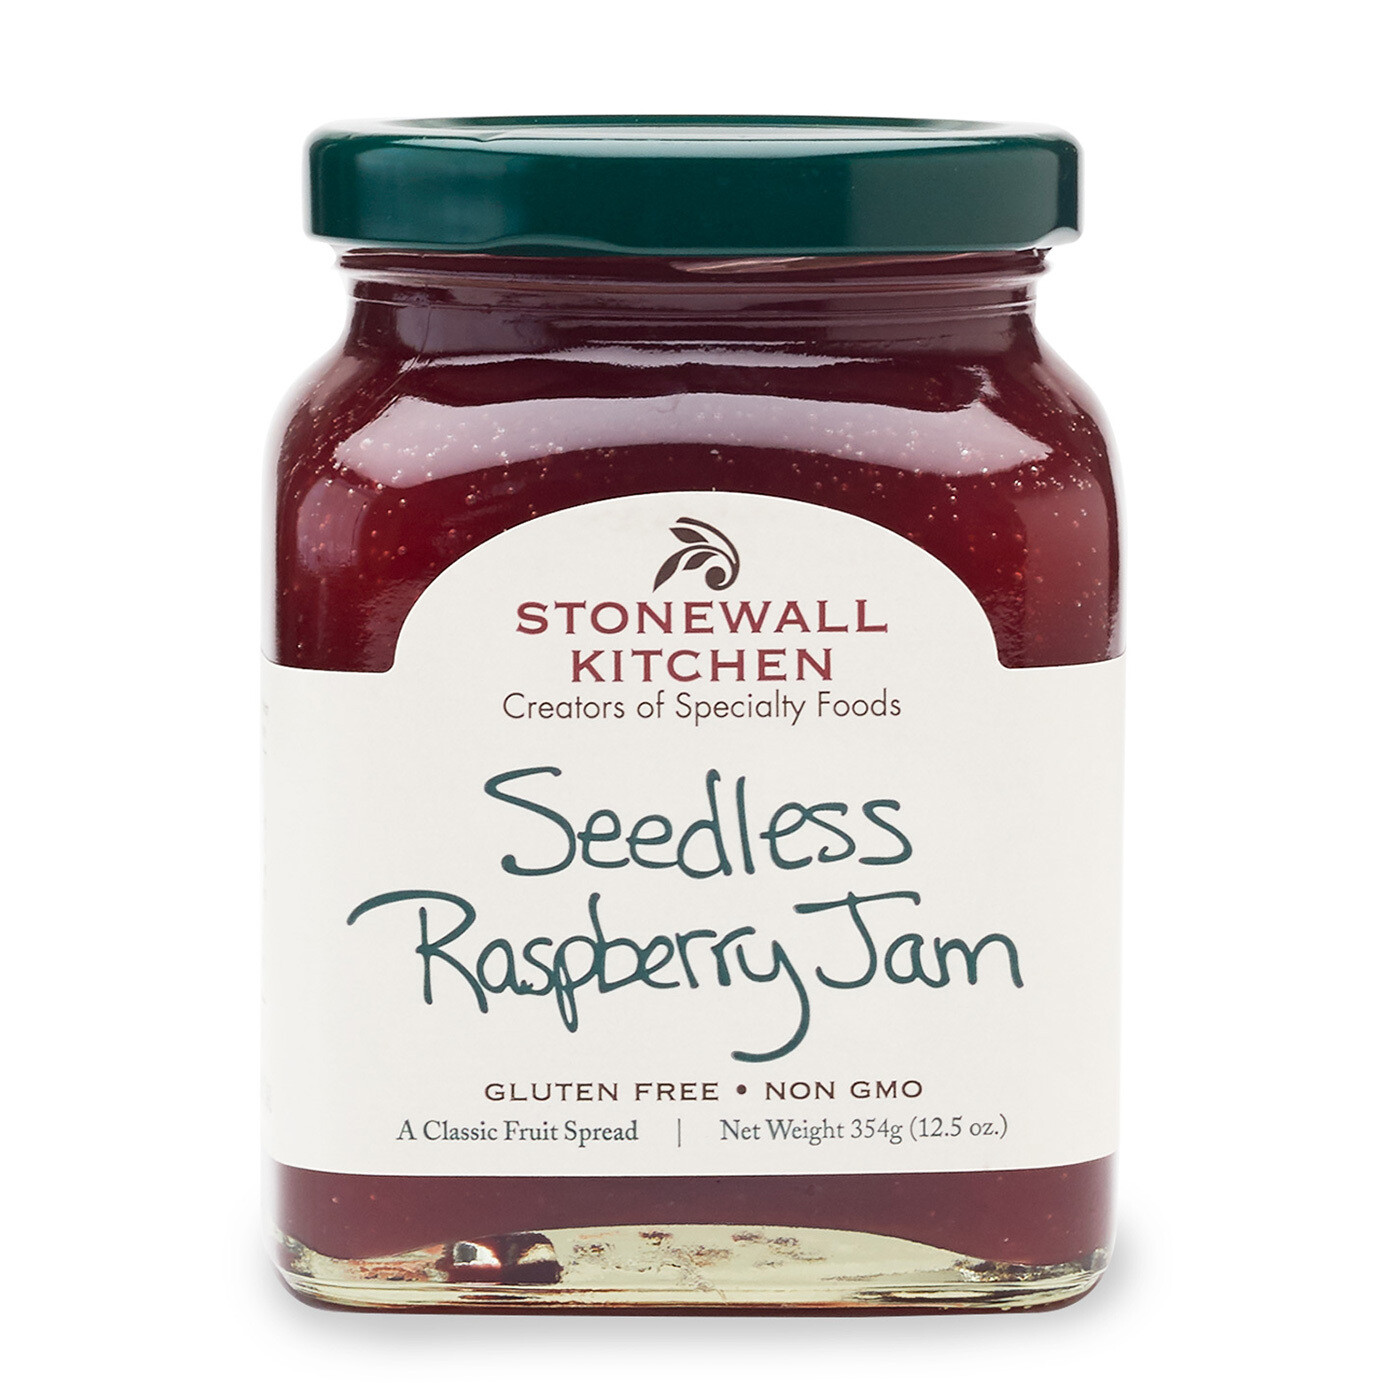 Seedless Raspberry Jam